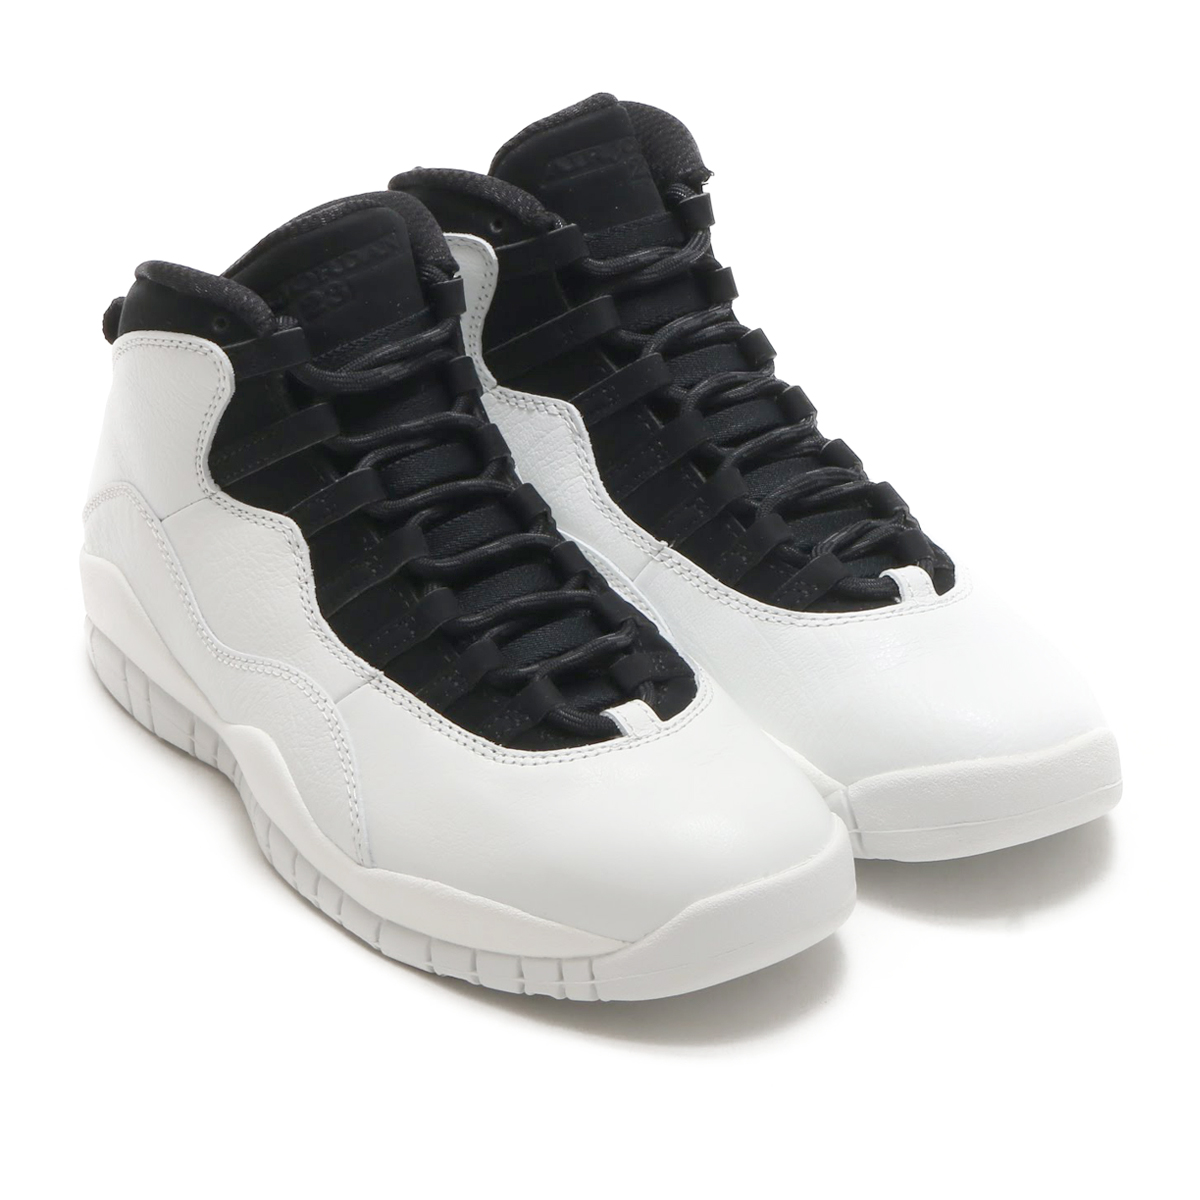 wholesale dealer 7cf89 83293 NIKE AIR JORDAN 10 RETRO (나이키 에어 조던 10 레트르) SUMMIT WHITE/SUMMIT WHITE-BLACK  18 SP-S